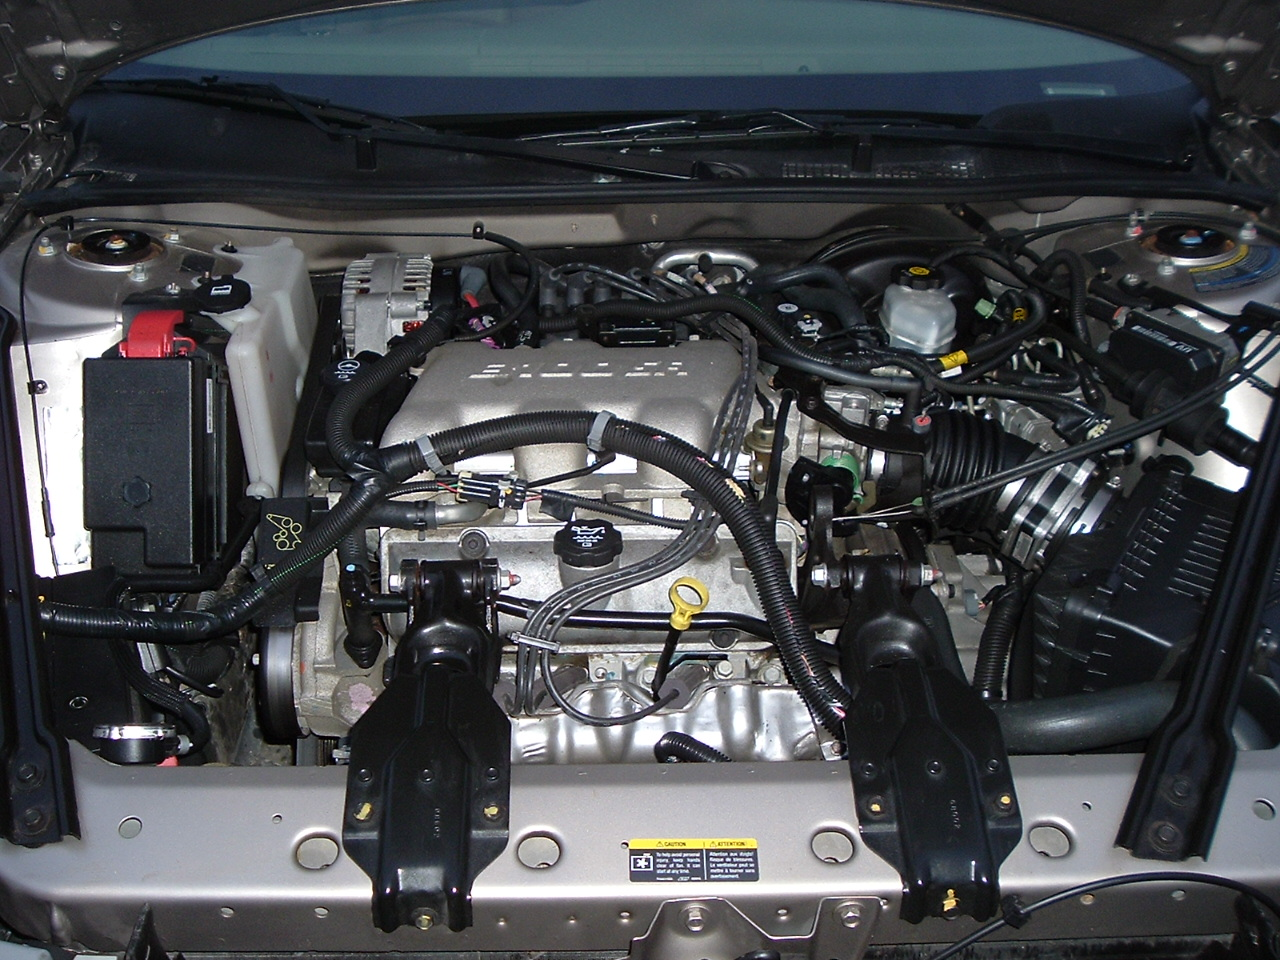 1999 chevrolet lumina a tisket a tasket a blown intake gasket 3100 ccs of middle of the road american power